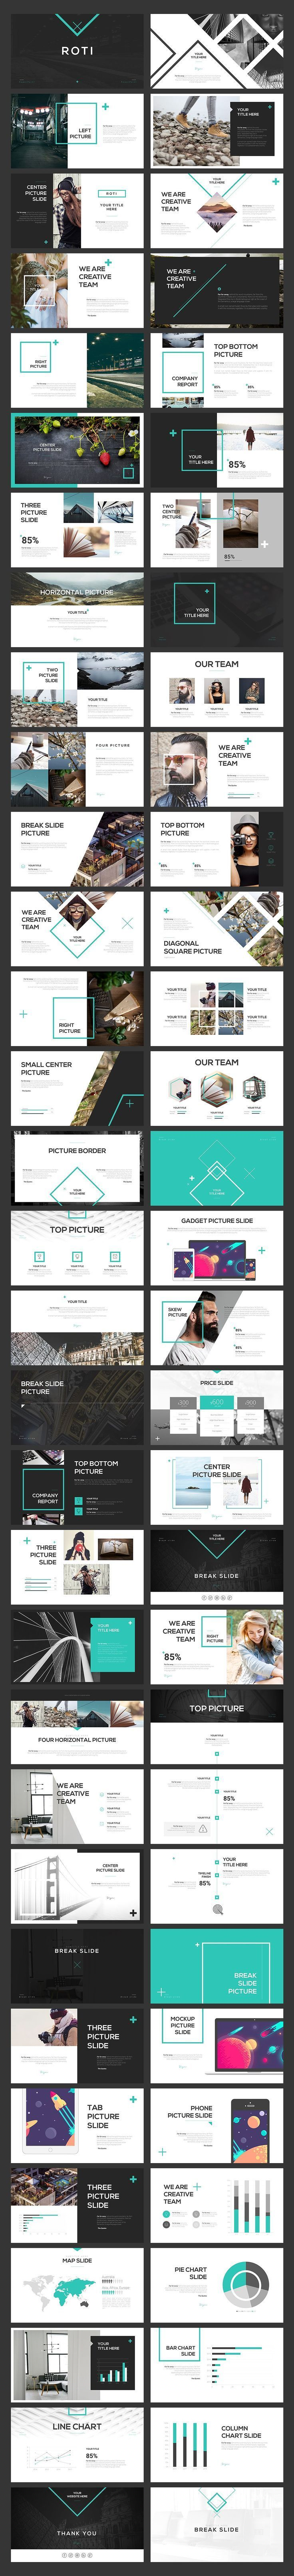 ROTI PowerPoint Template by Angkalimabelas on Creative Market